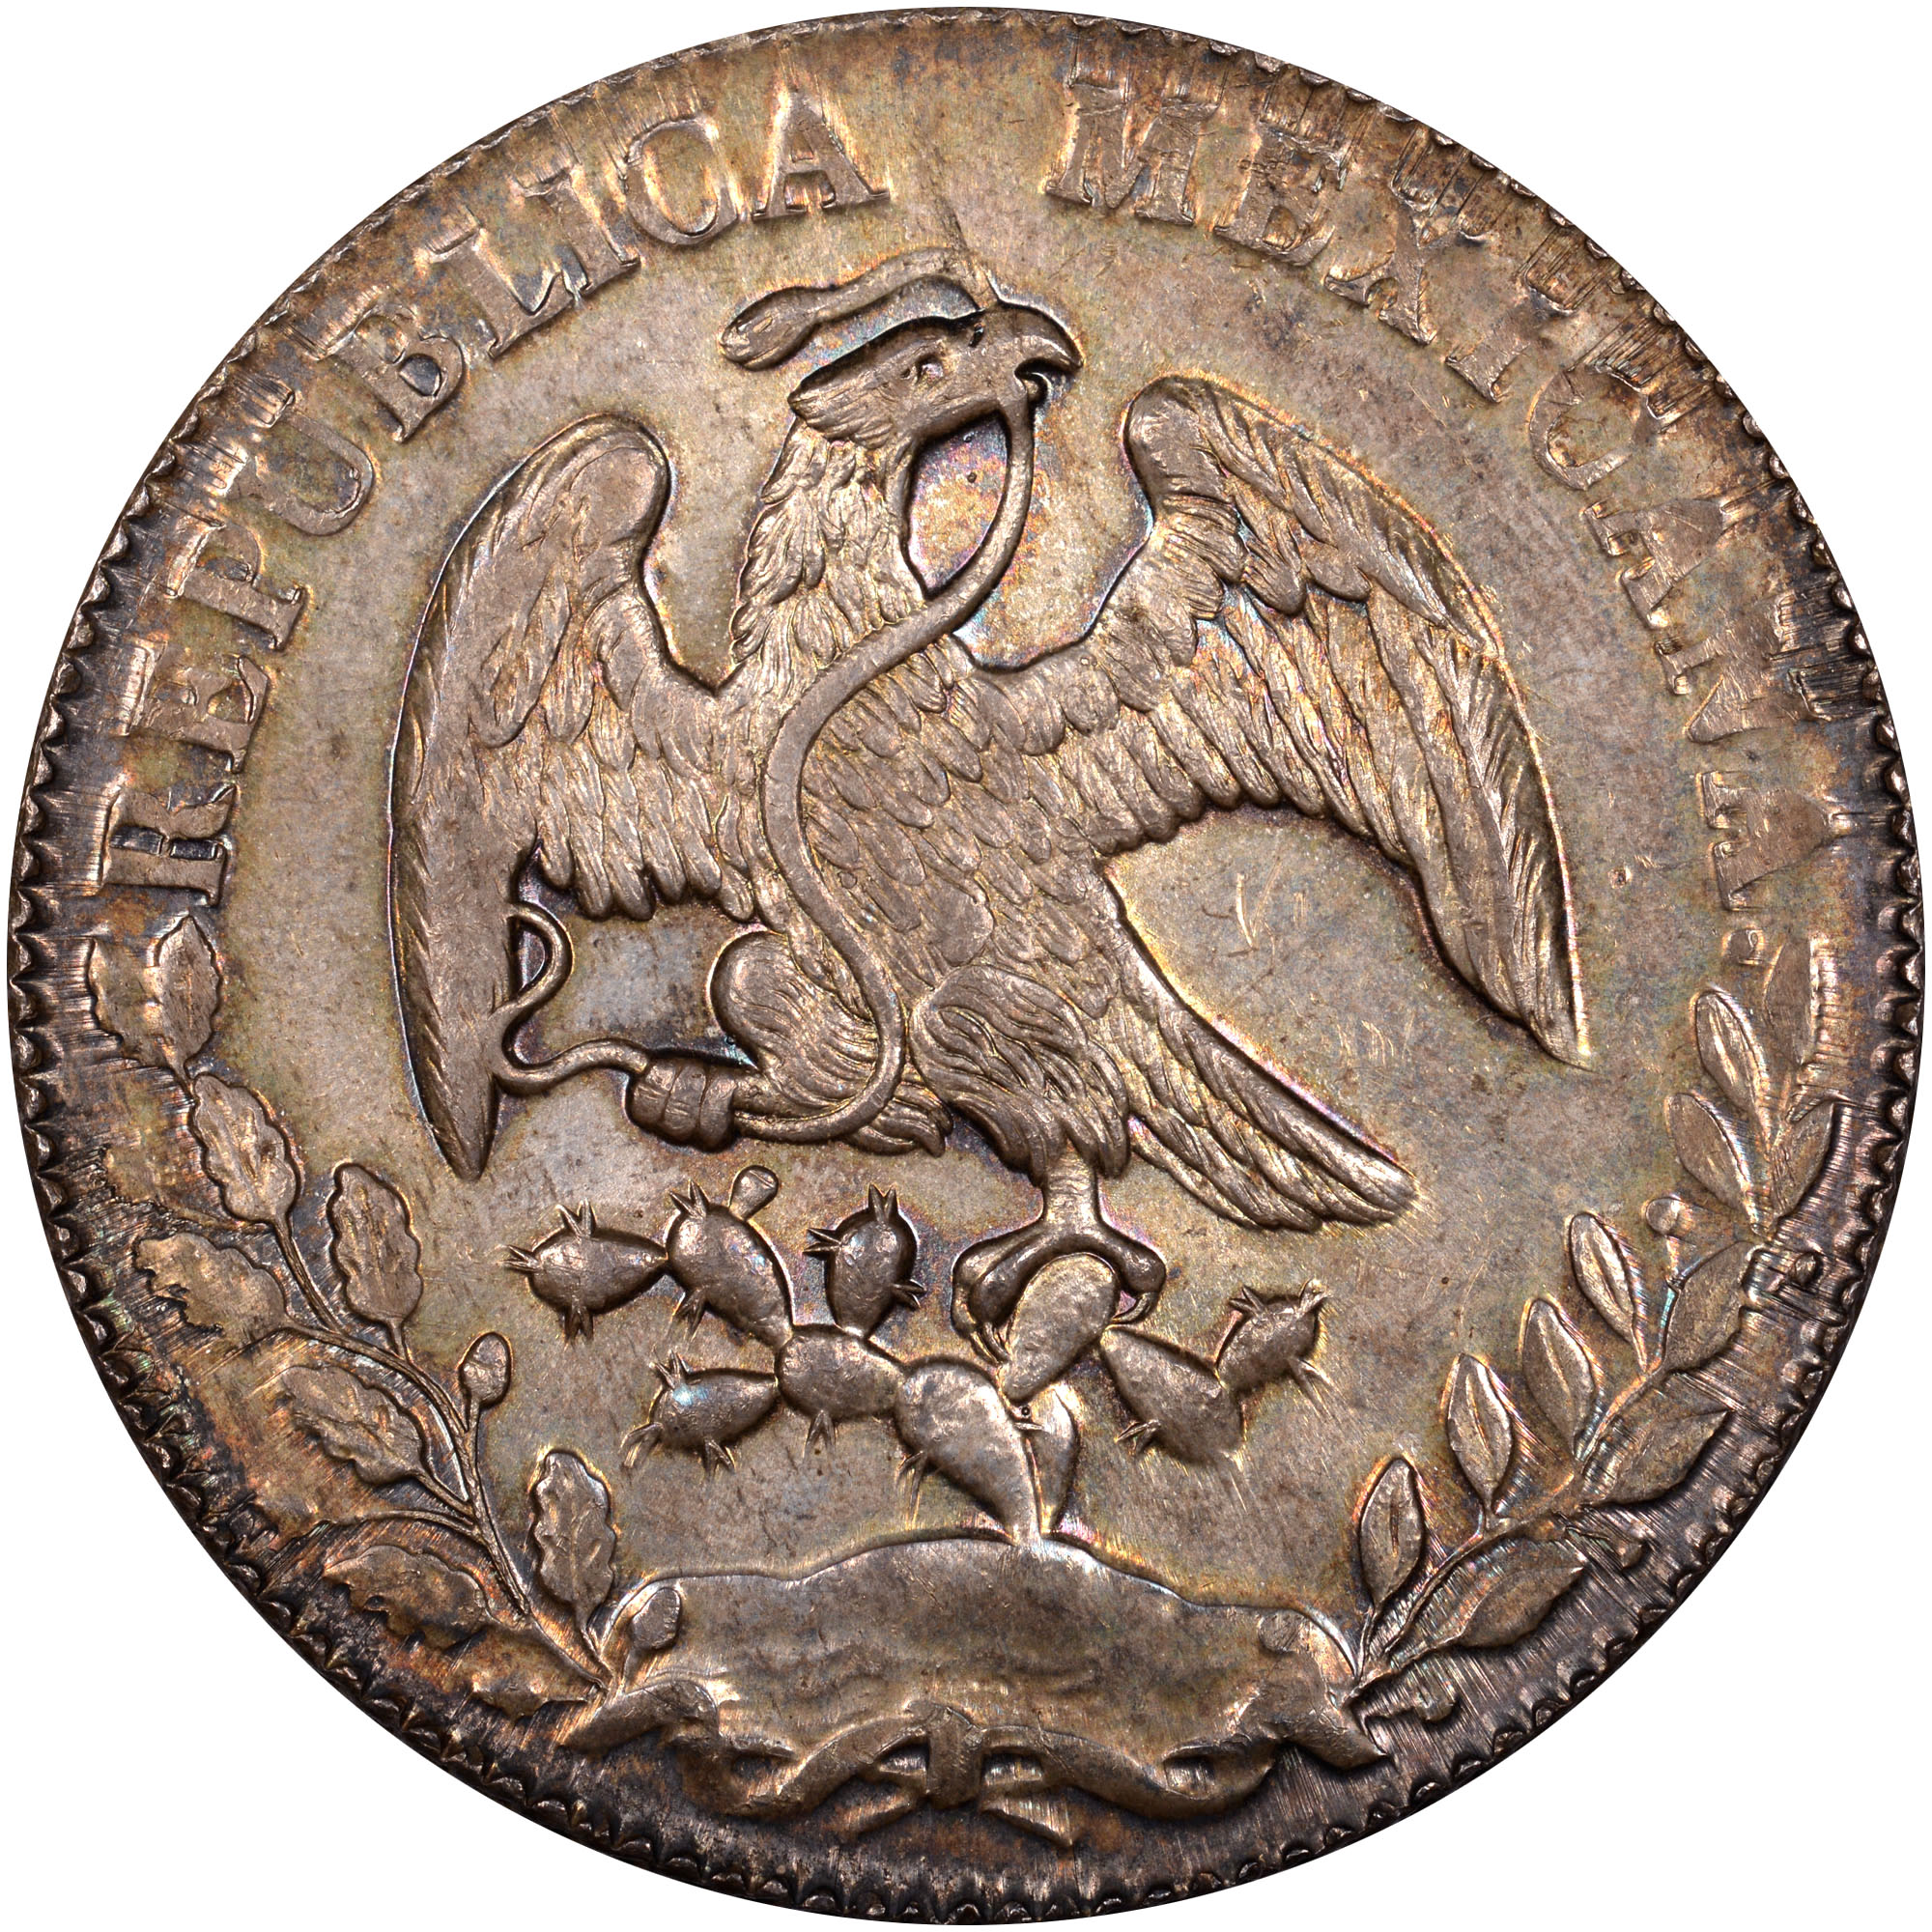 1824-1897 Mexico 8 Reales obverse